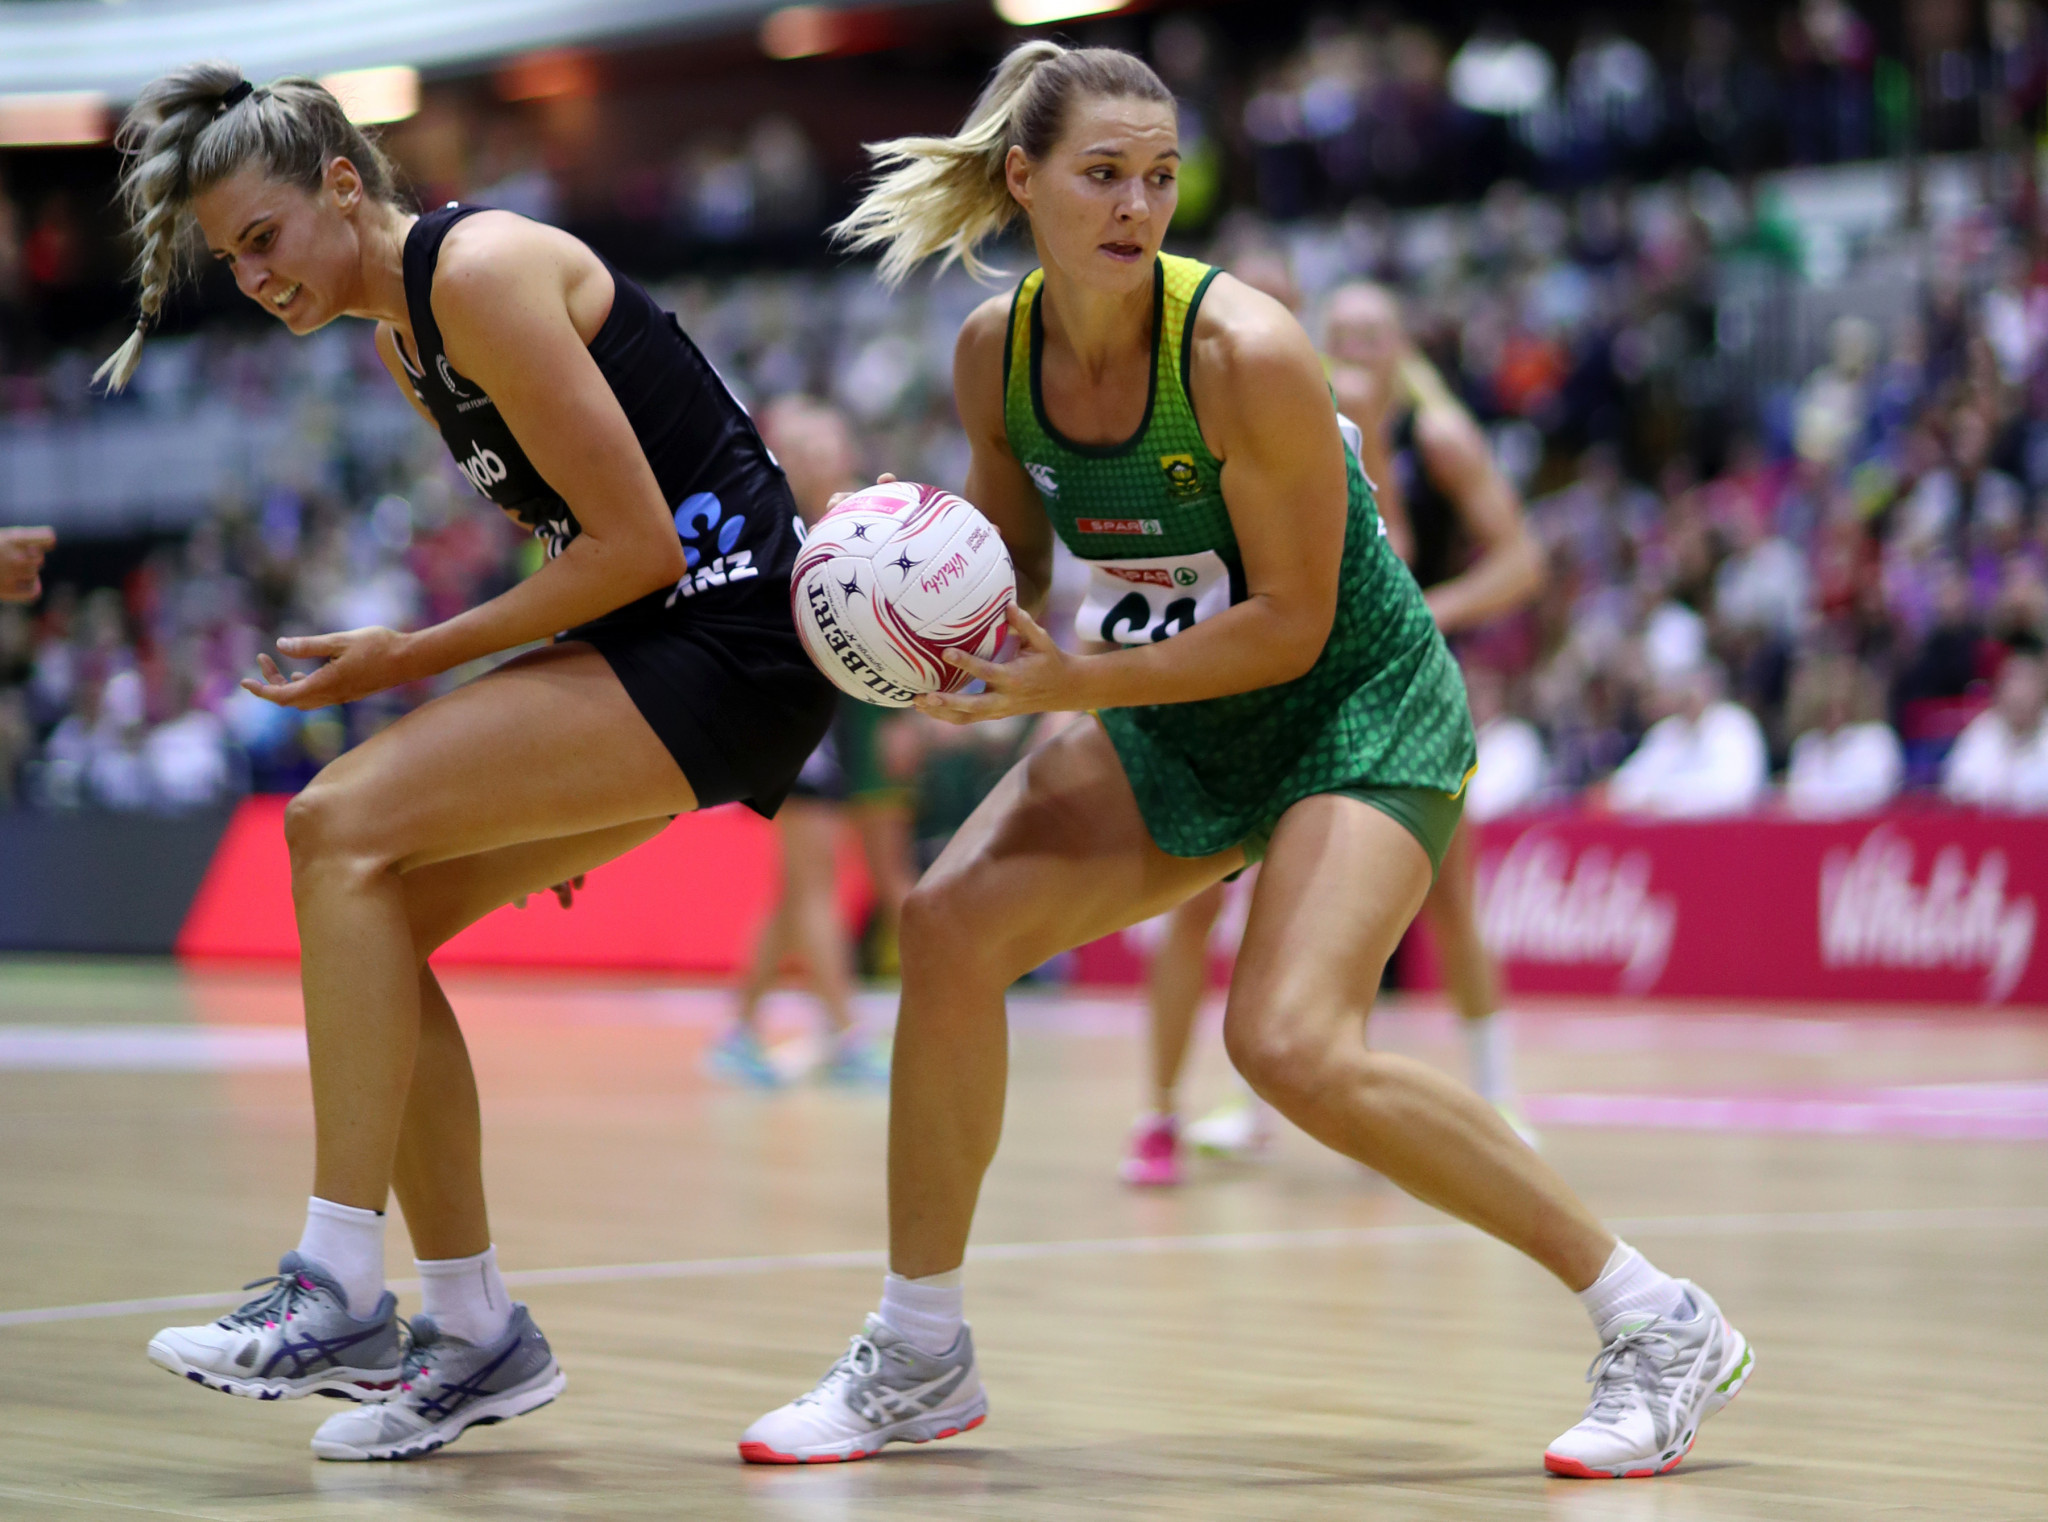 The COVID-19 pandemic has disrupted the netball calendar ©Getty Images